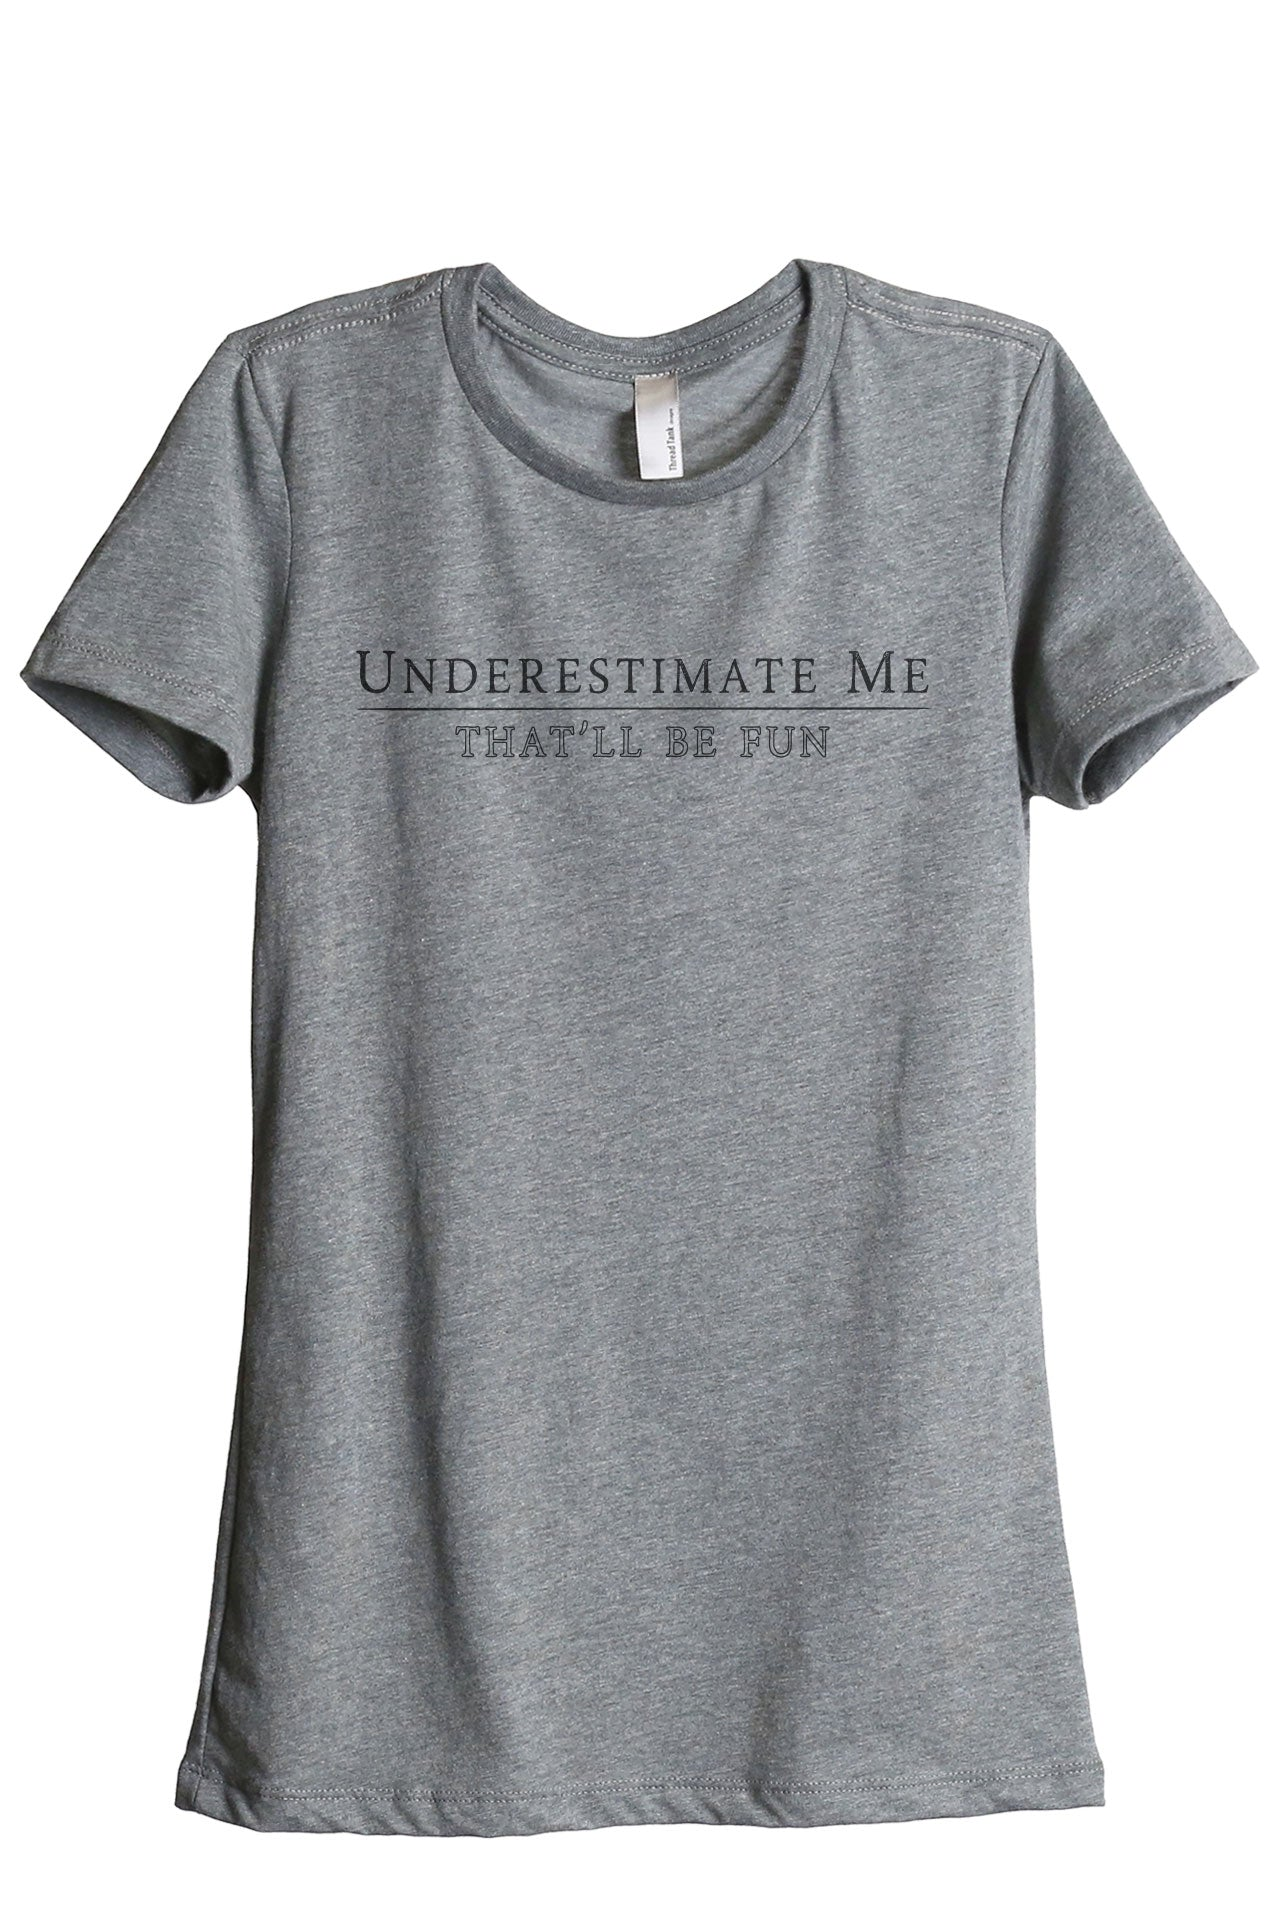 Underestimate Me - That'll Be Fun Women's Relaxed Crewneck T-Shirt Top Tee Heather Grey